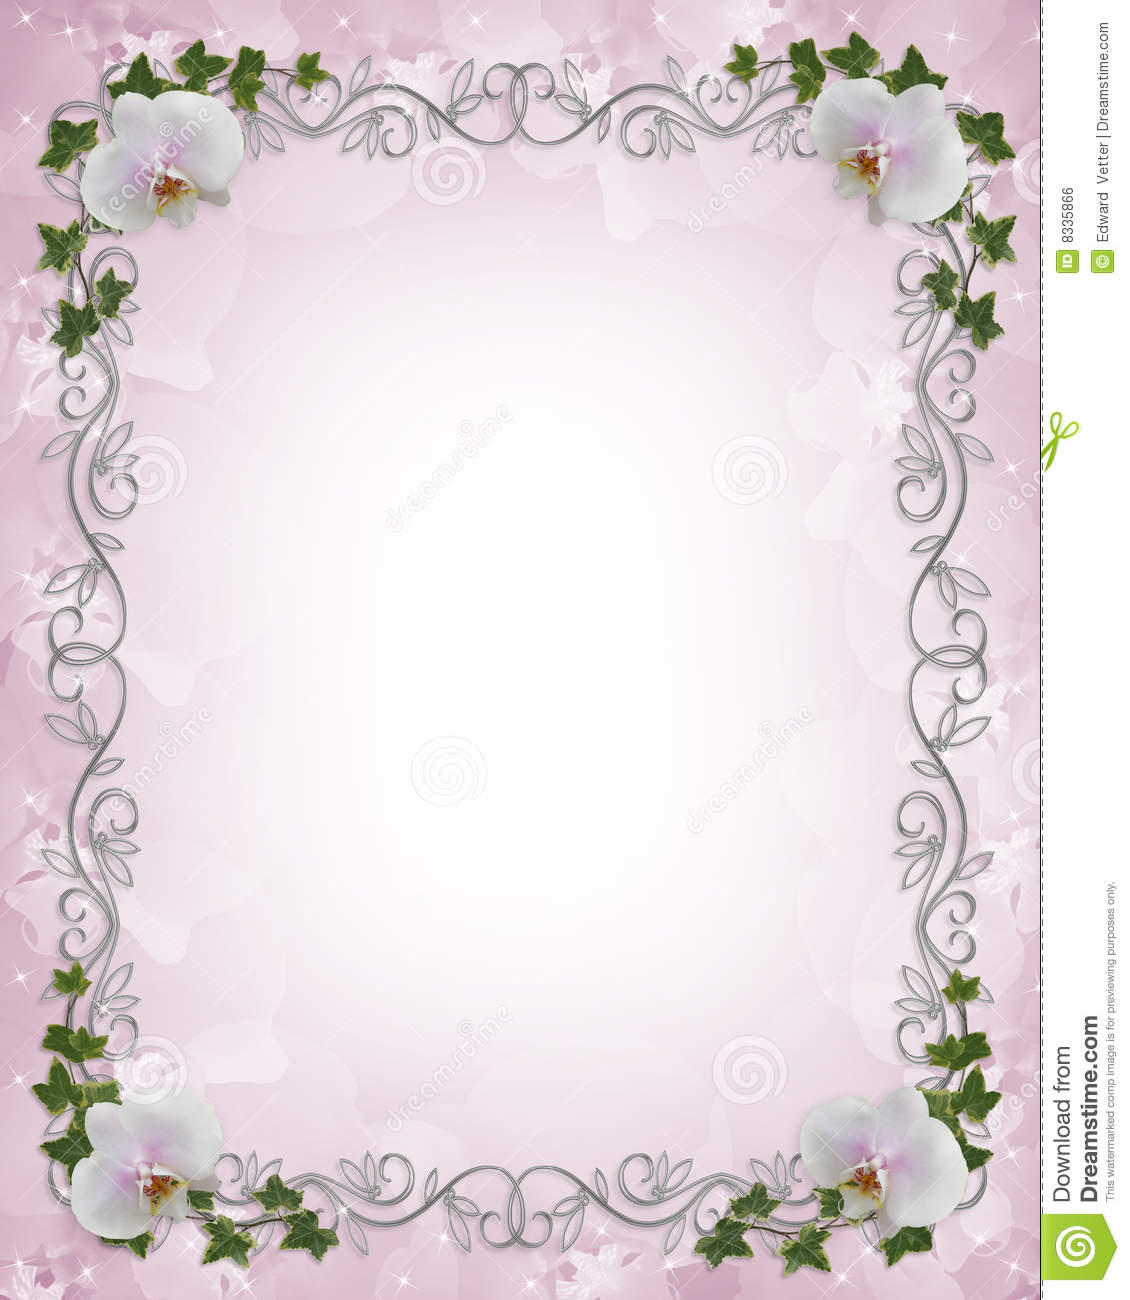 Wedding invitation border orchids ivy stock illustration wedding invitation border orchids ivy stock illustration illustration of elegant design 8335866 toneelgroepblik Image collections